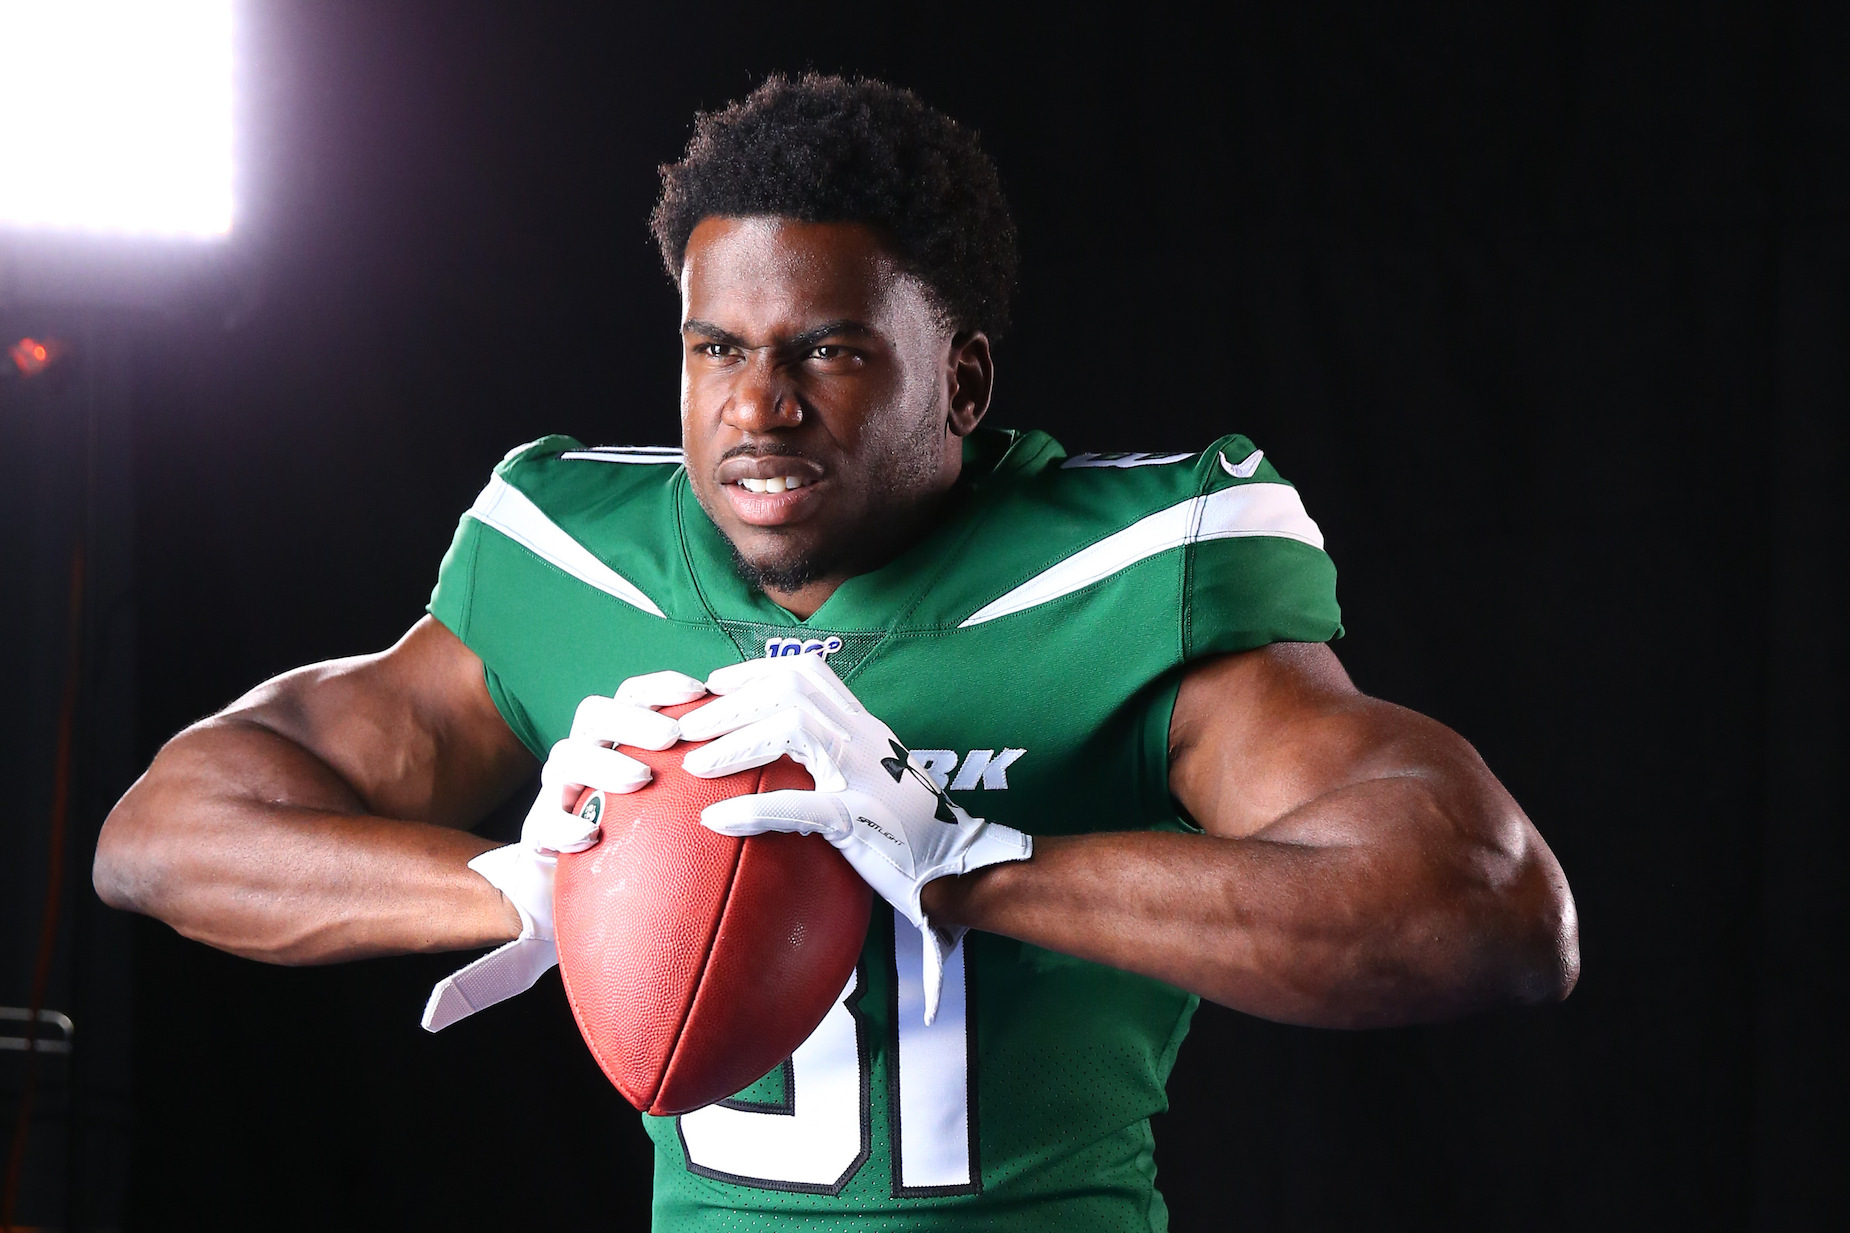 The New York Jets paid Quincy Enunwa $20 million for a single reception.